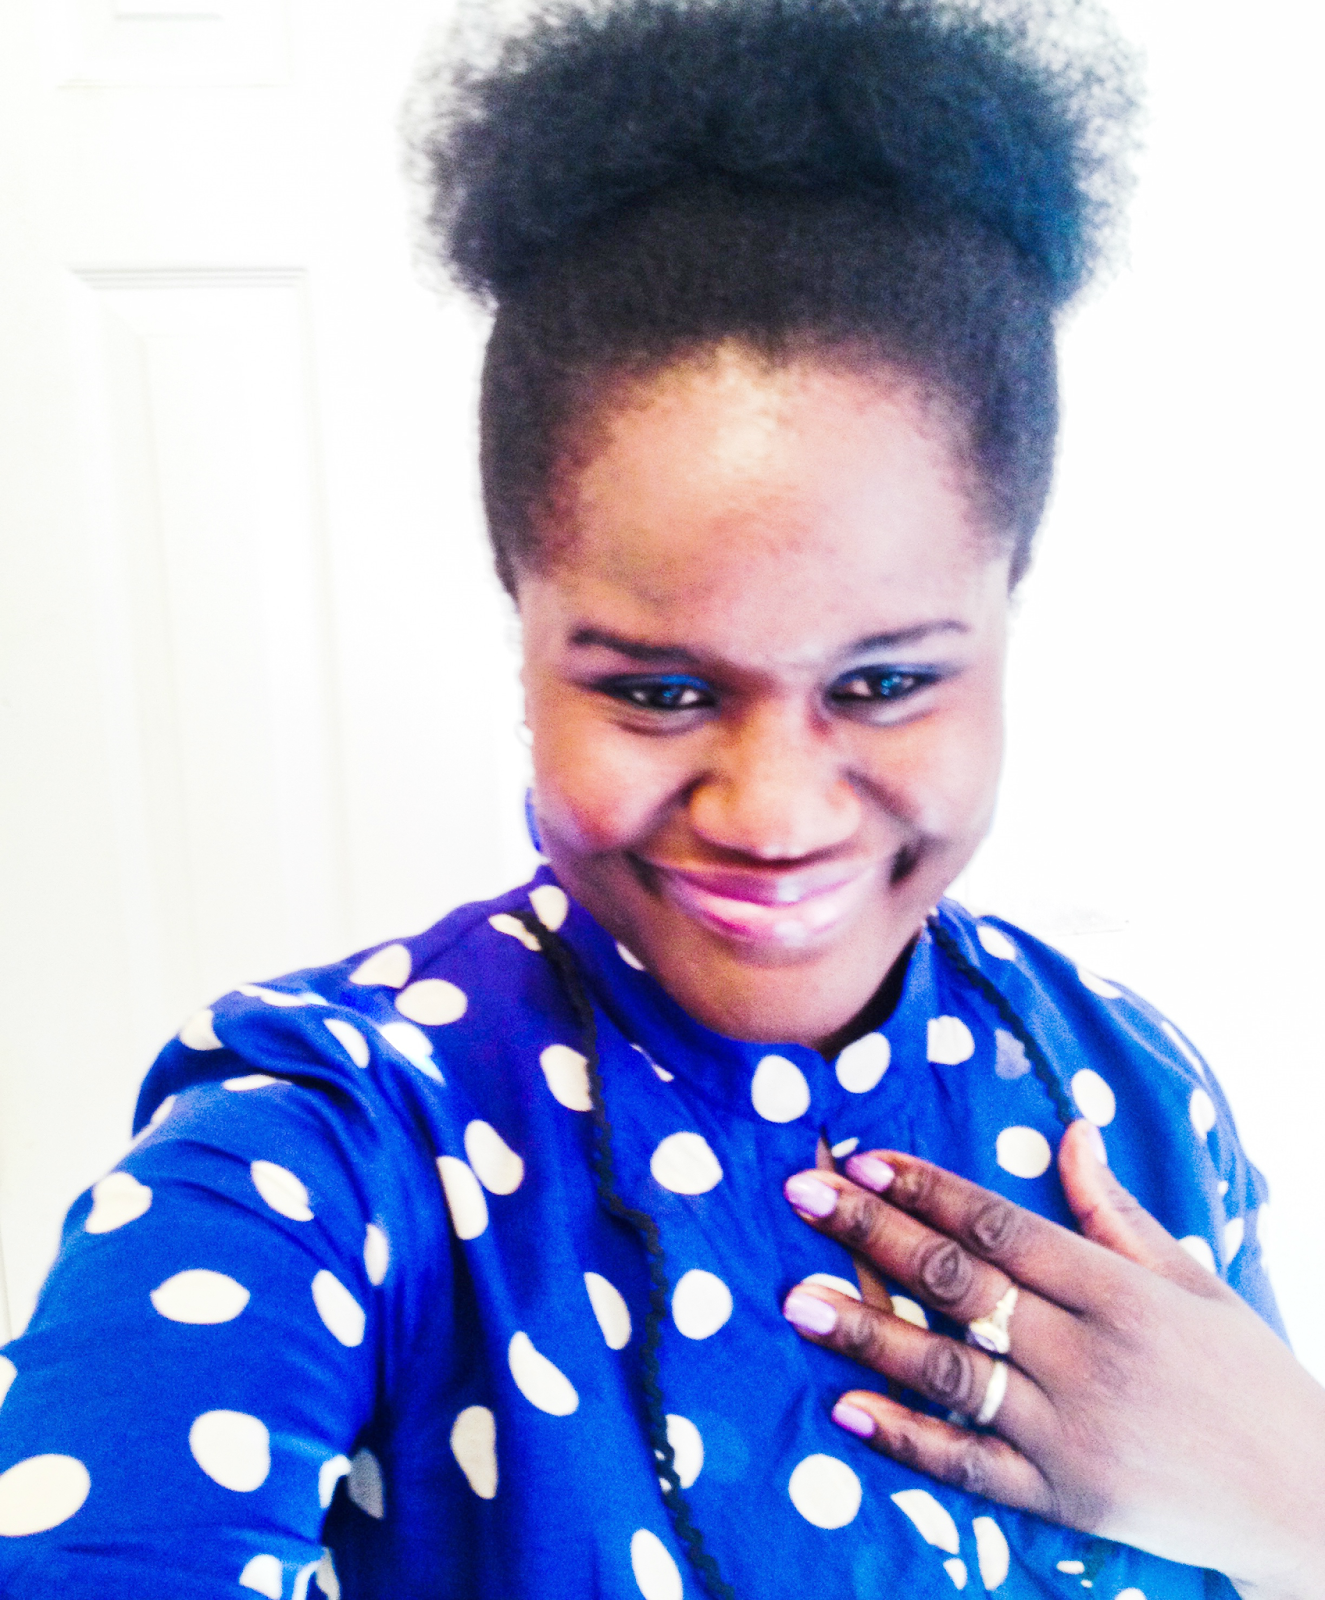 Outfit Of The Week: The eShakti Polka Dots Blouse